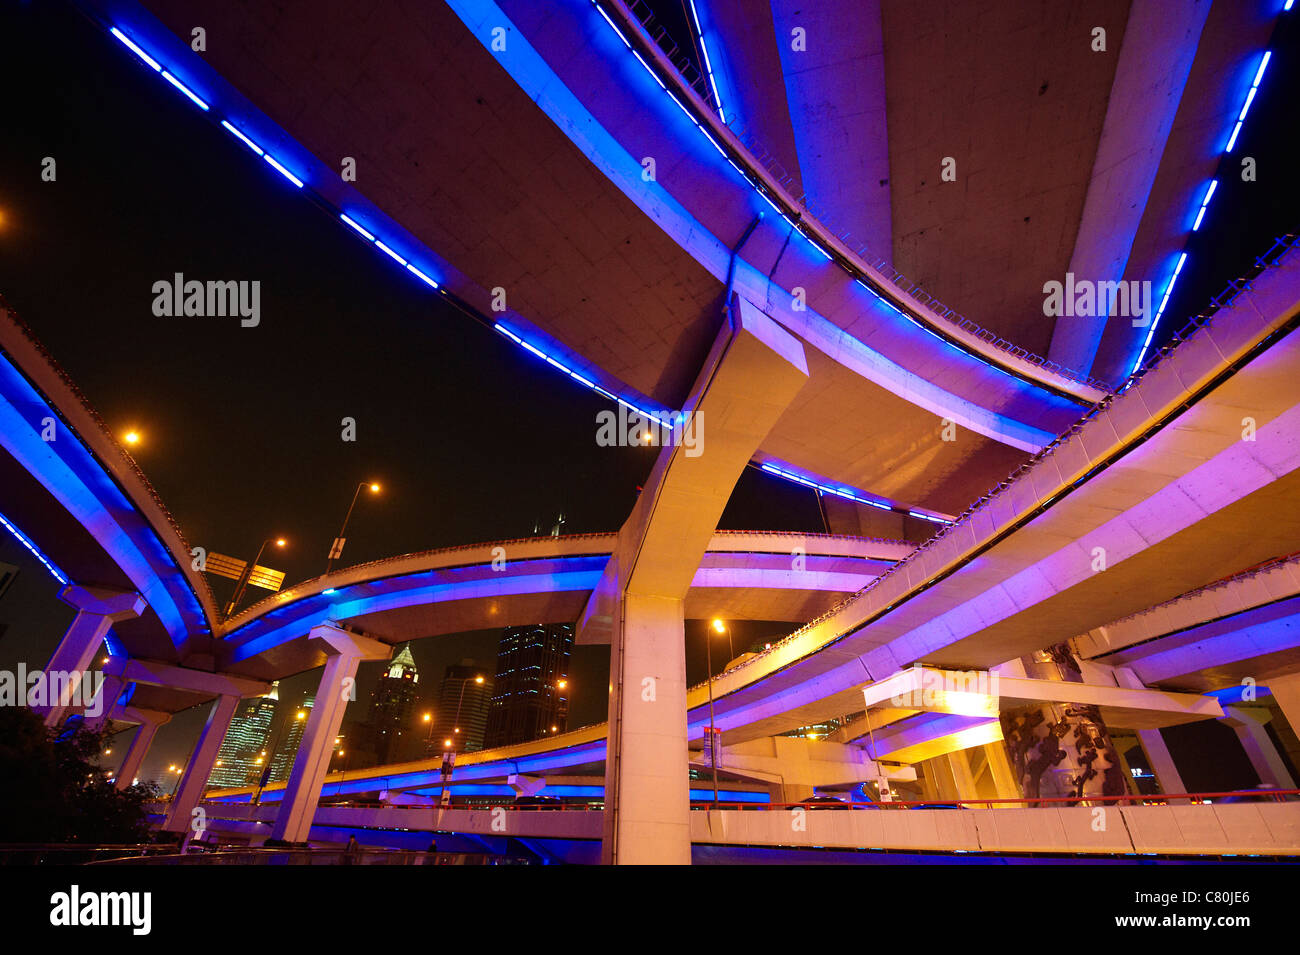 China, Shanghai, the Yannann elevated crossroad - Stock Image